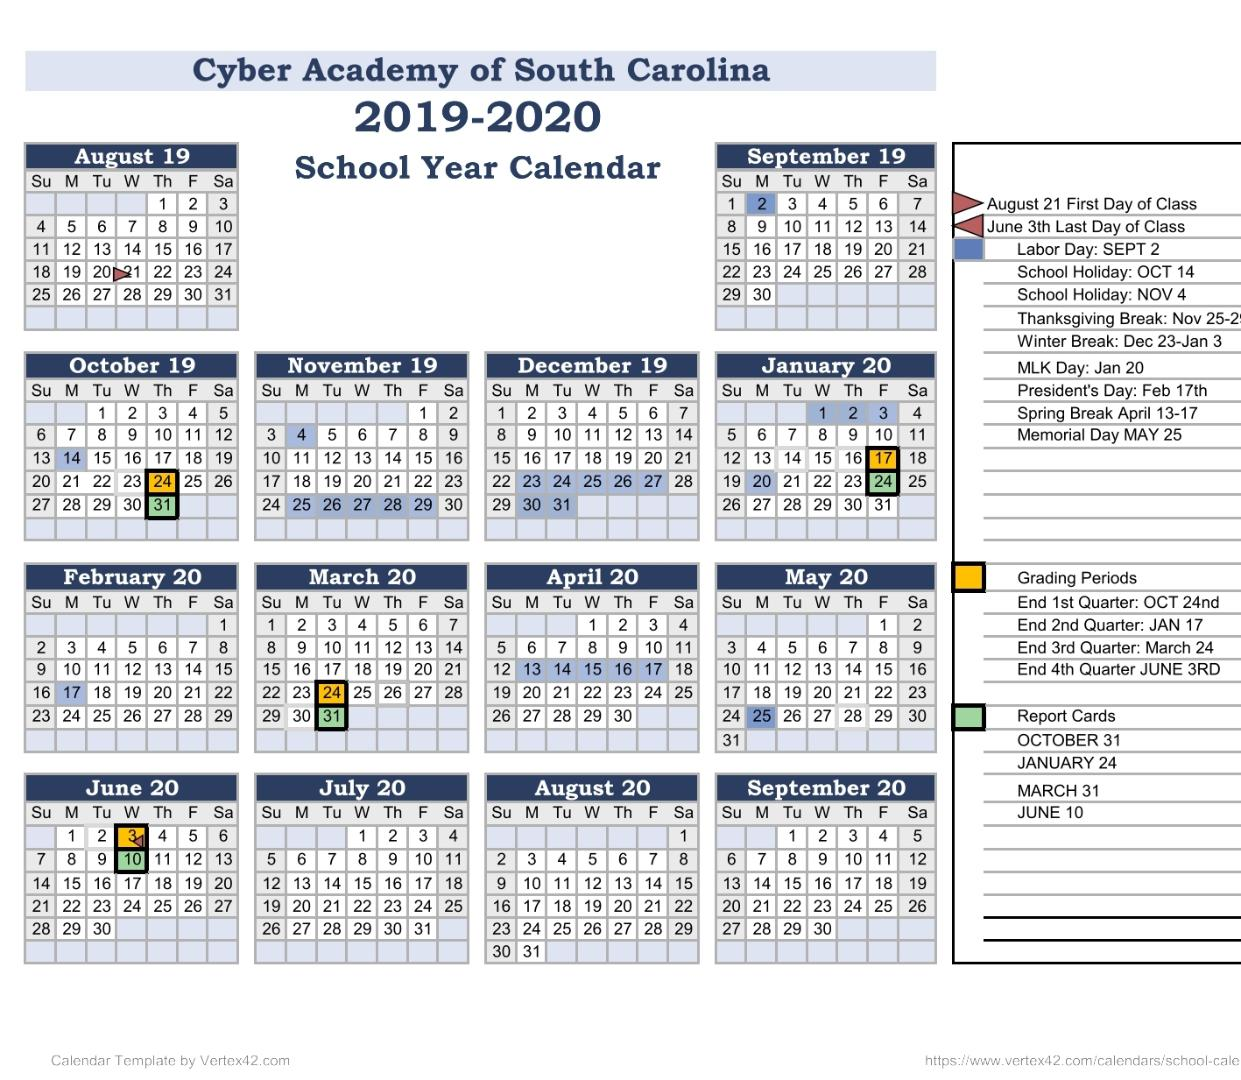 Cyber Academy of South Carolina PTSO